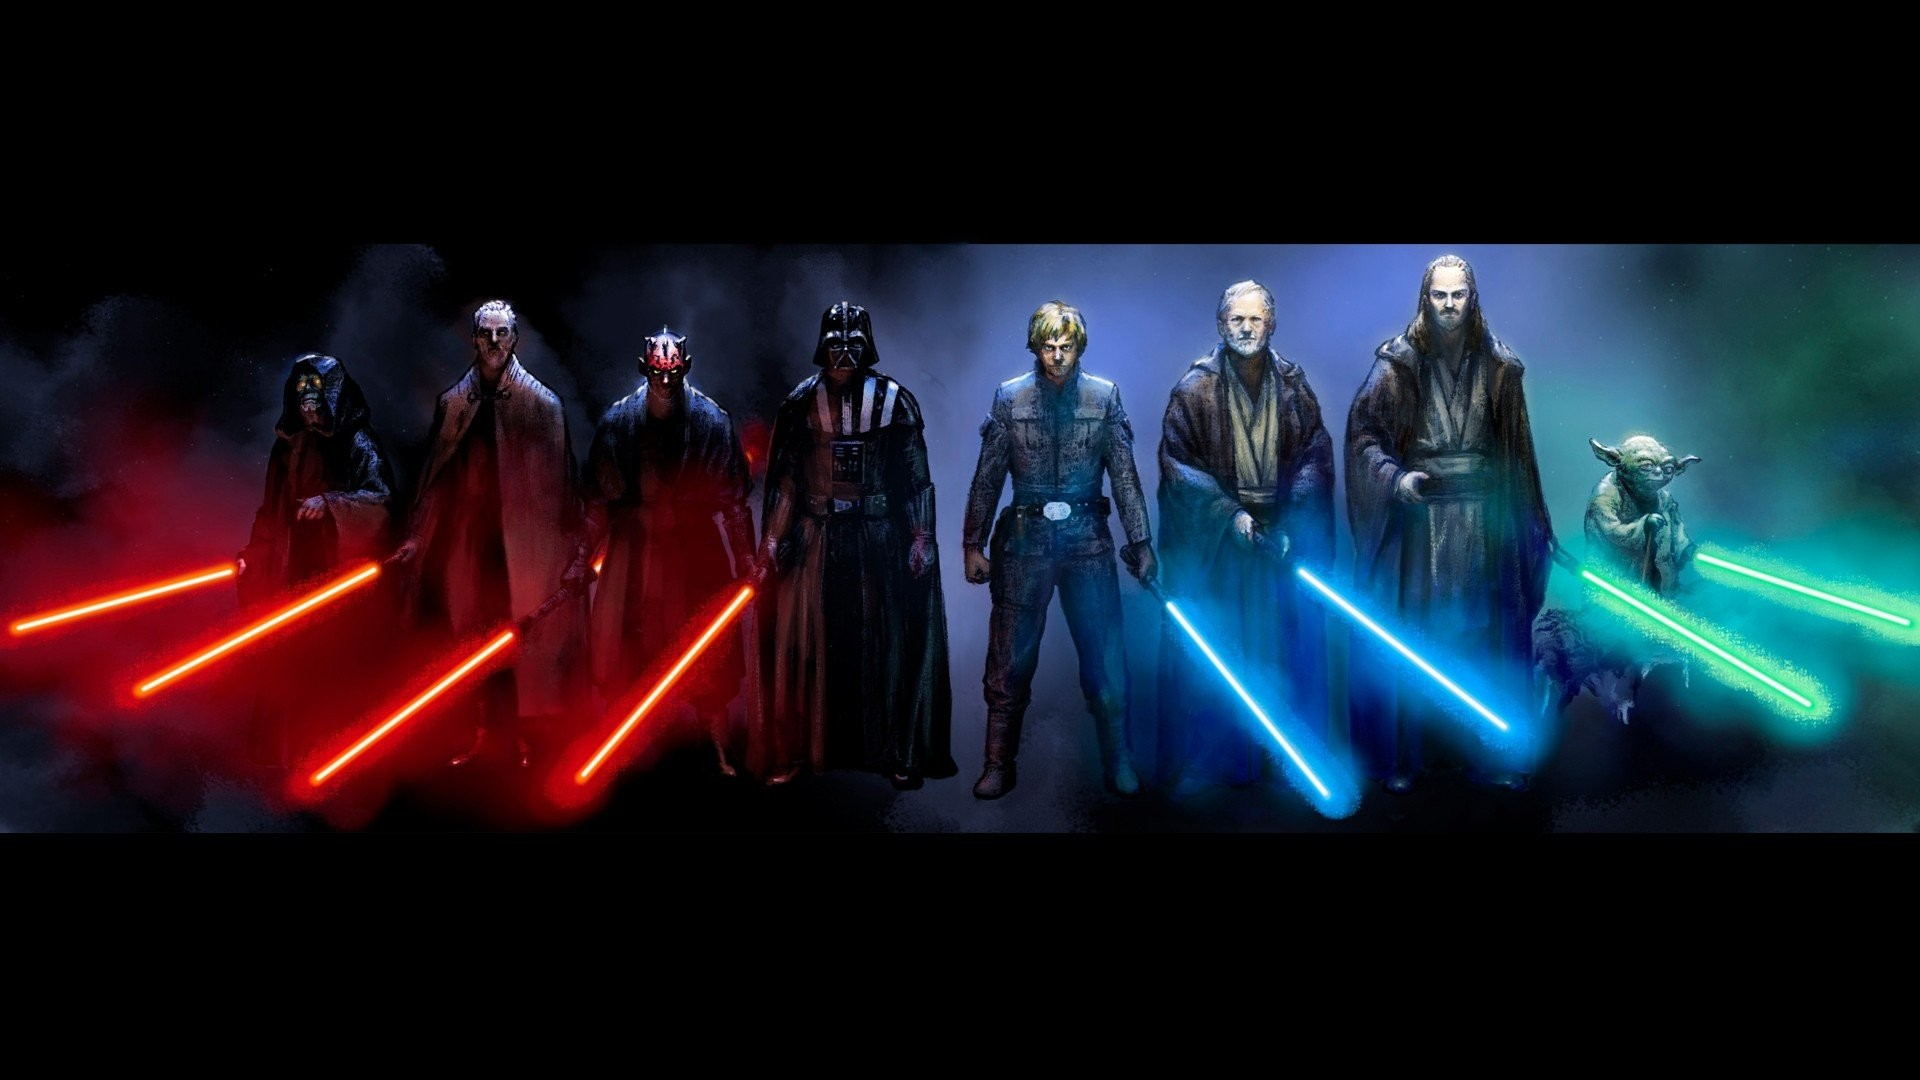 1920x1080 Star Wars Lightsaber Characters  wallpaper